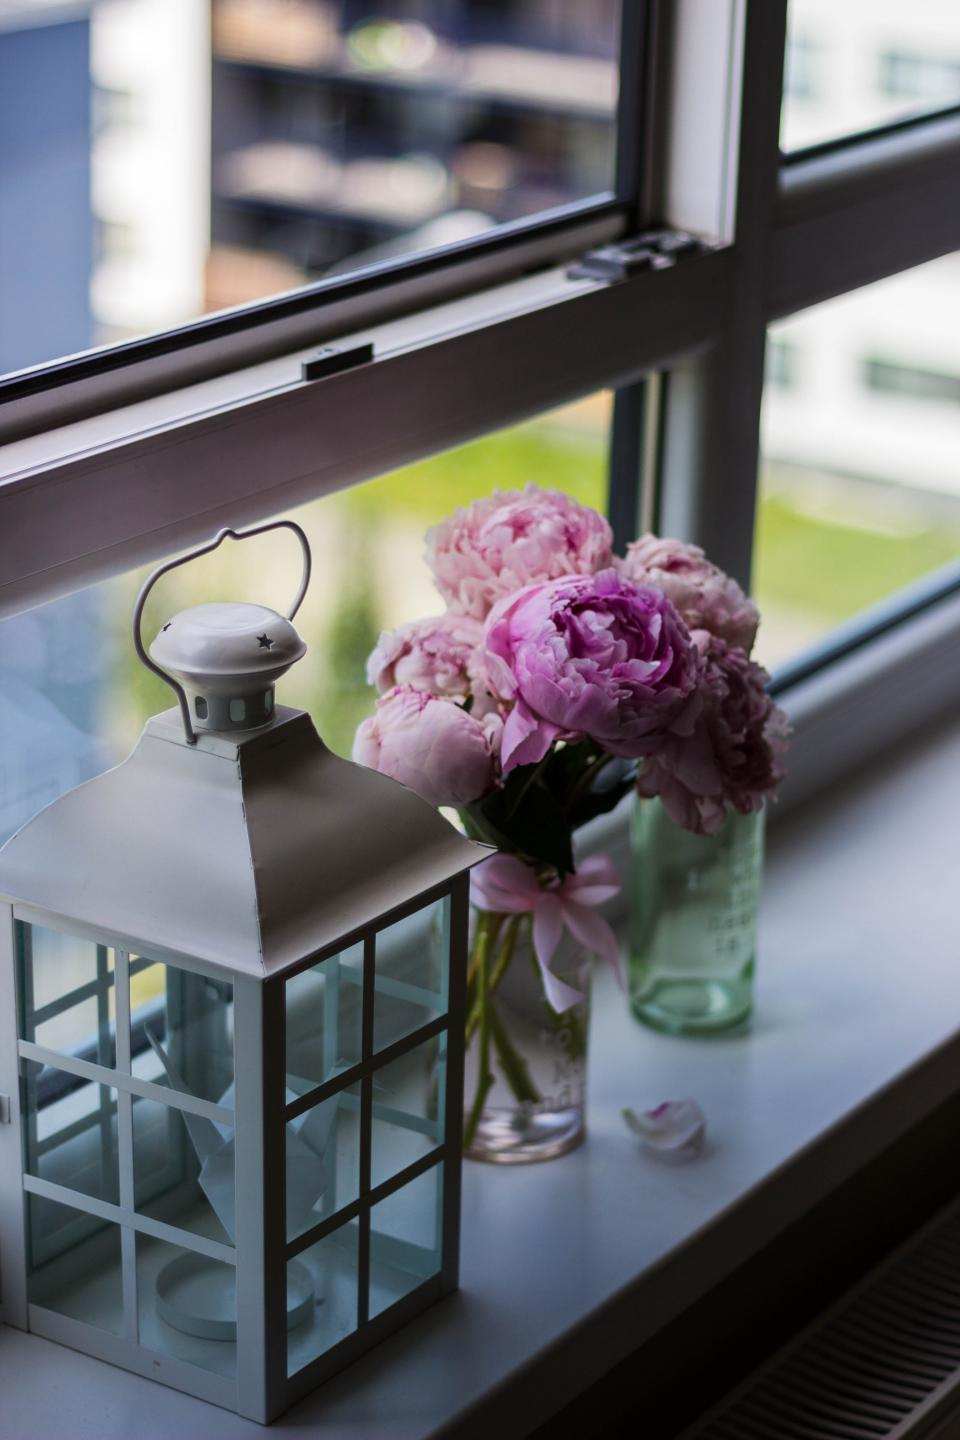 colorful flower vase lamp bedroom window blur bokeh